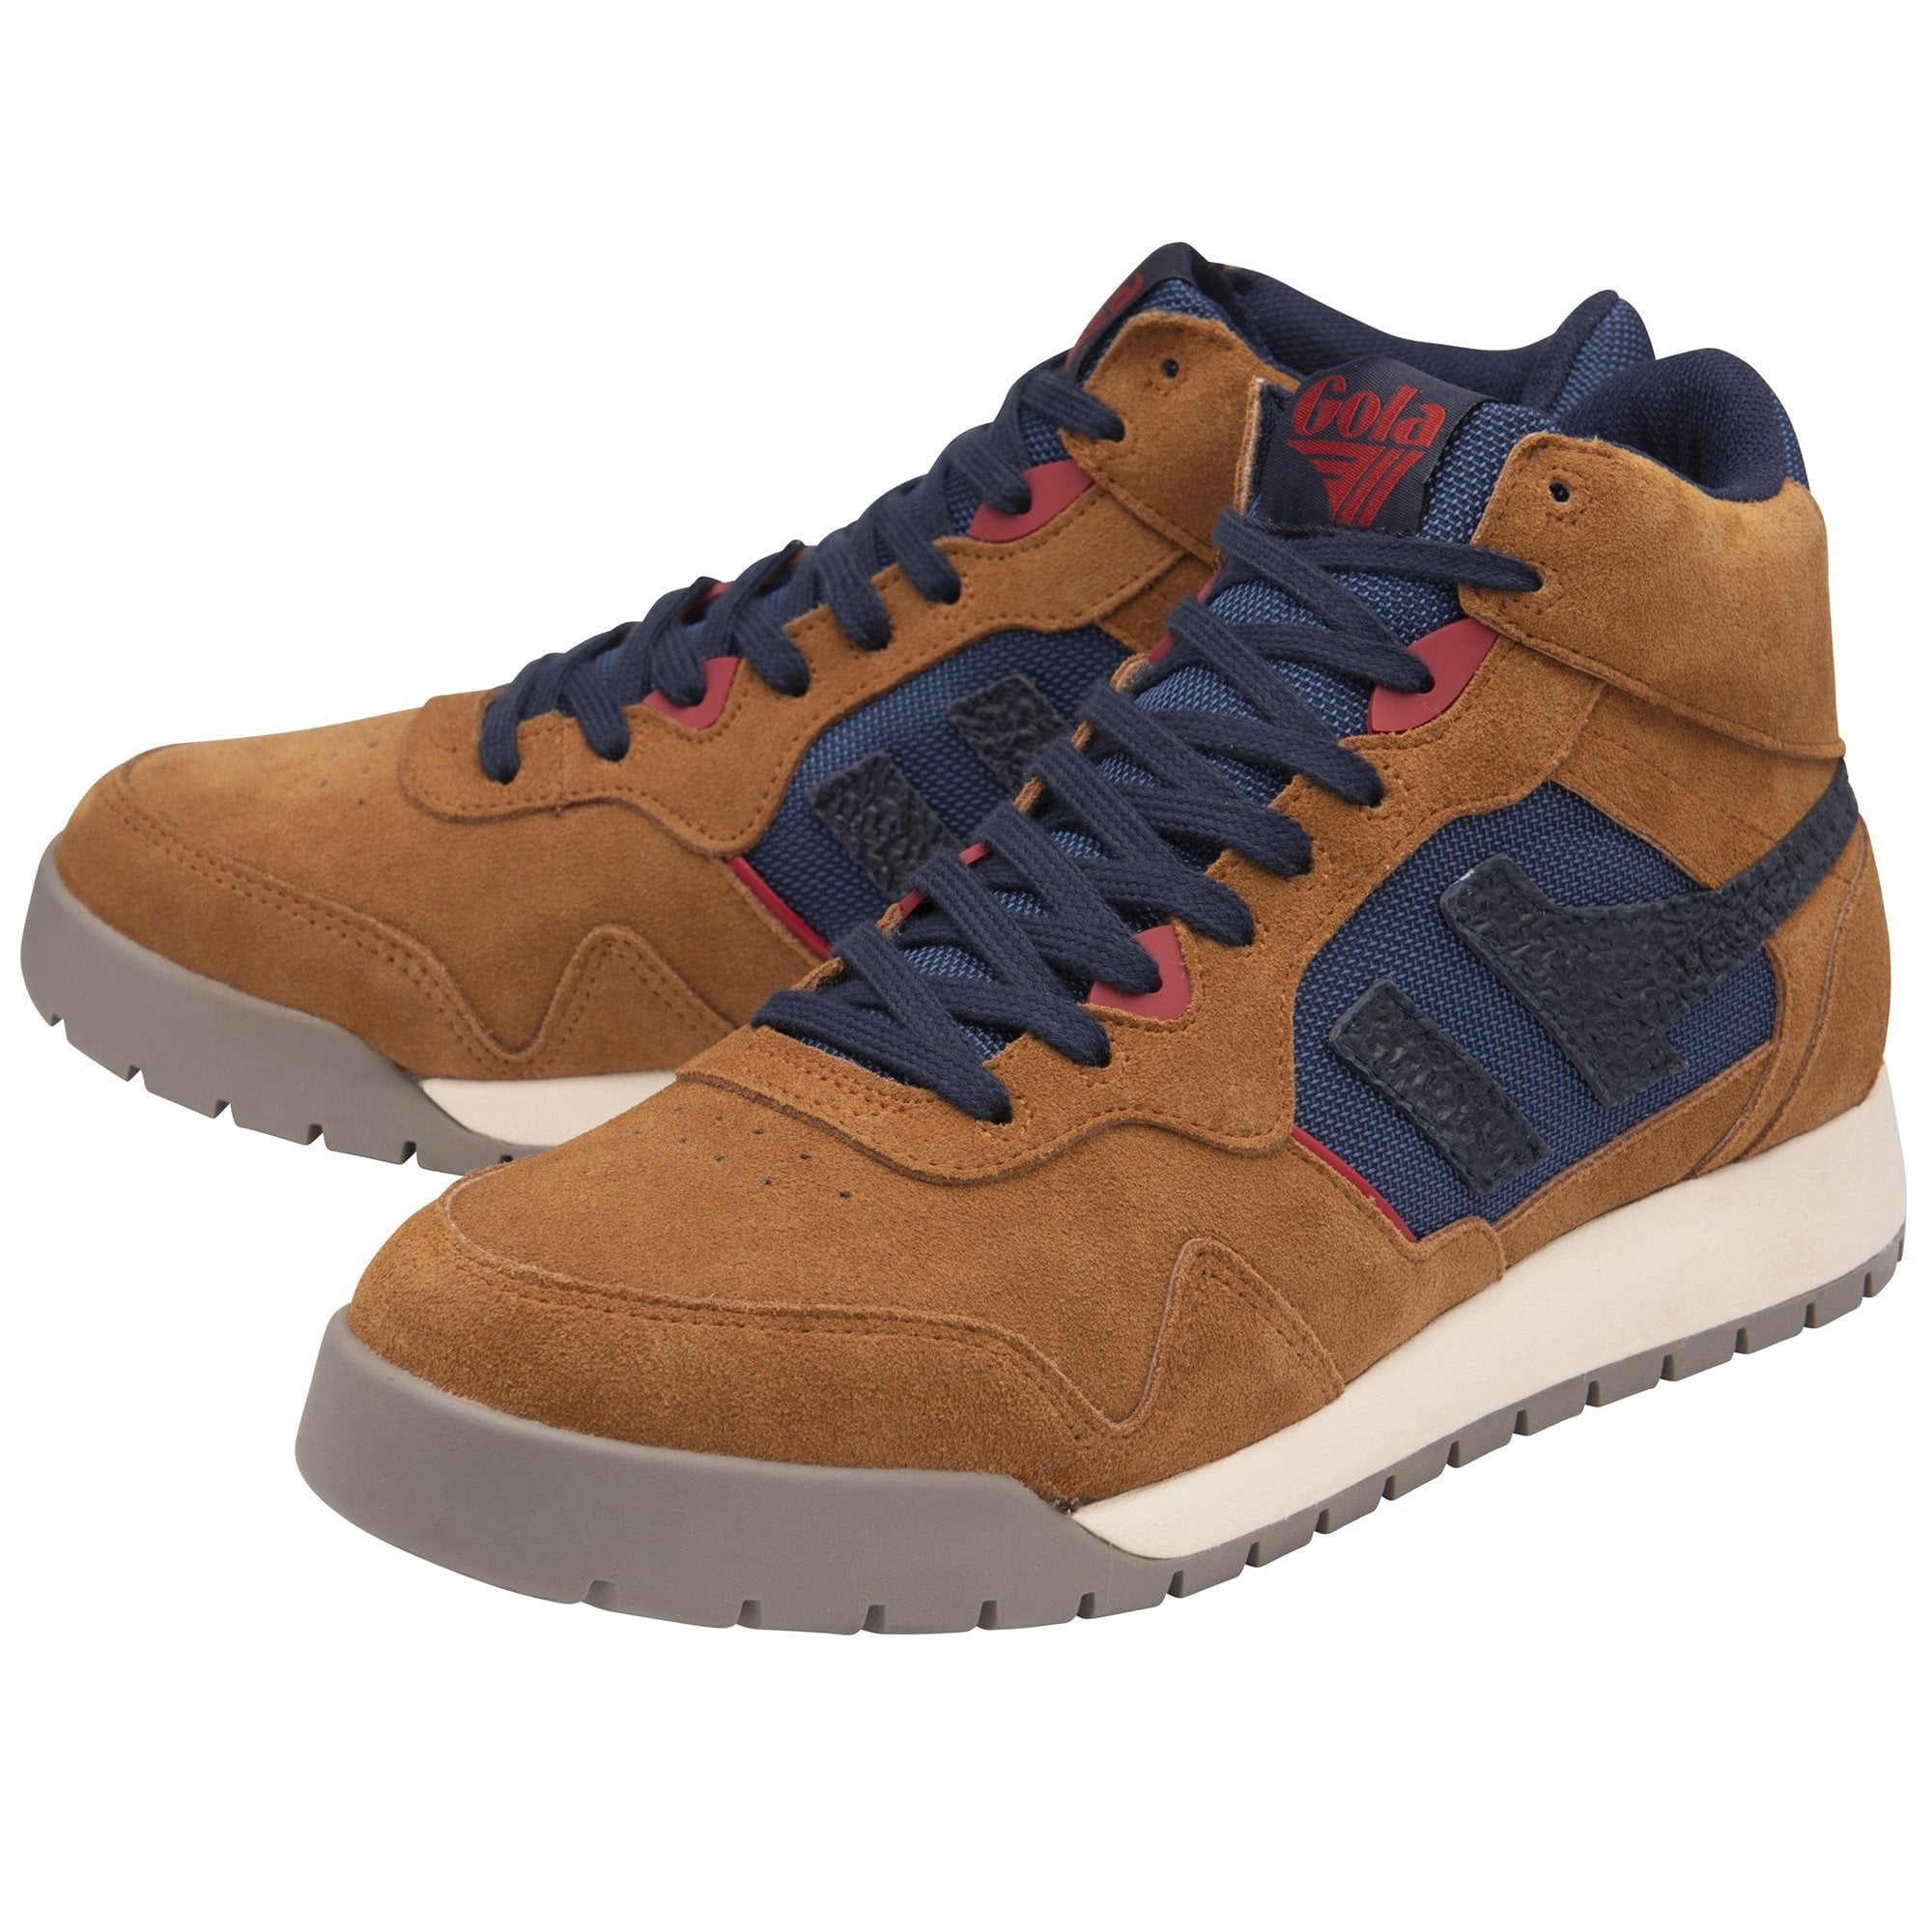 Men's Summit High Sneakers